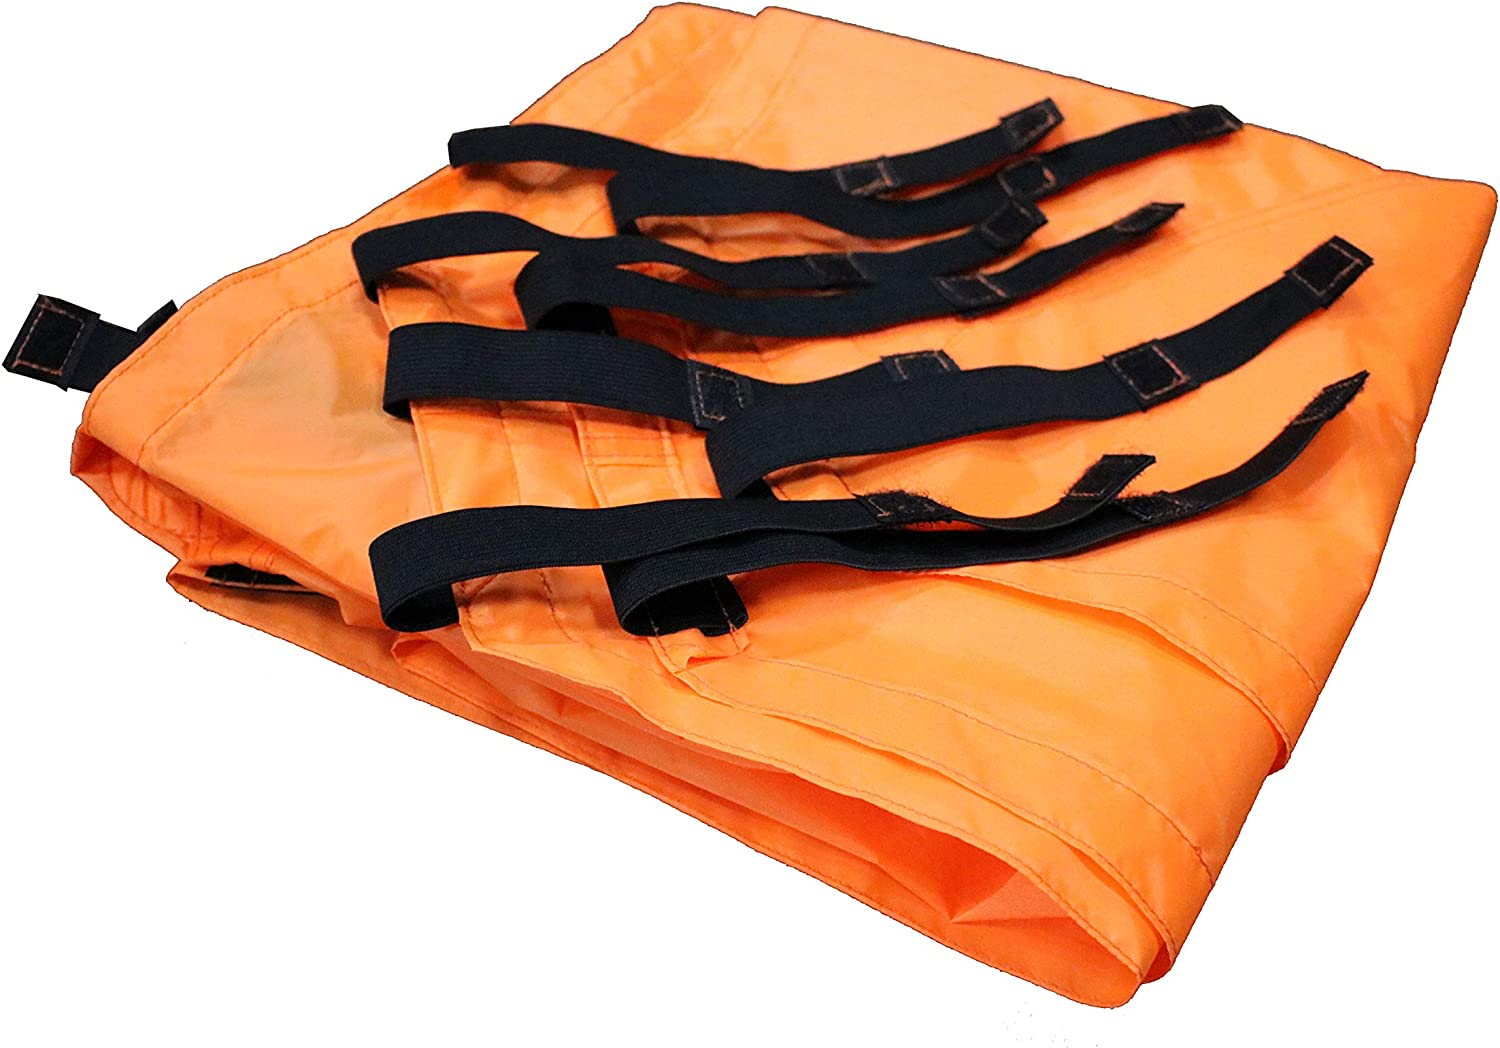 HME Executioner 4-Sided Orange Blind Cap